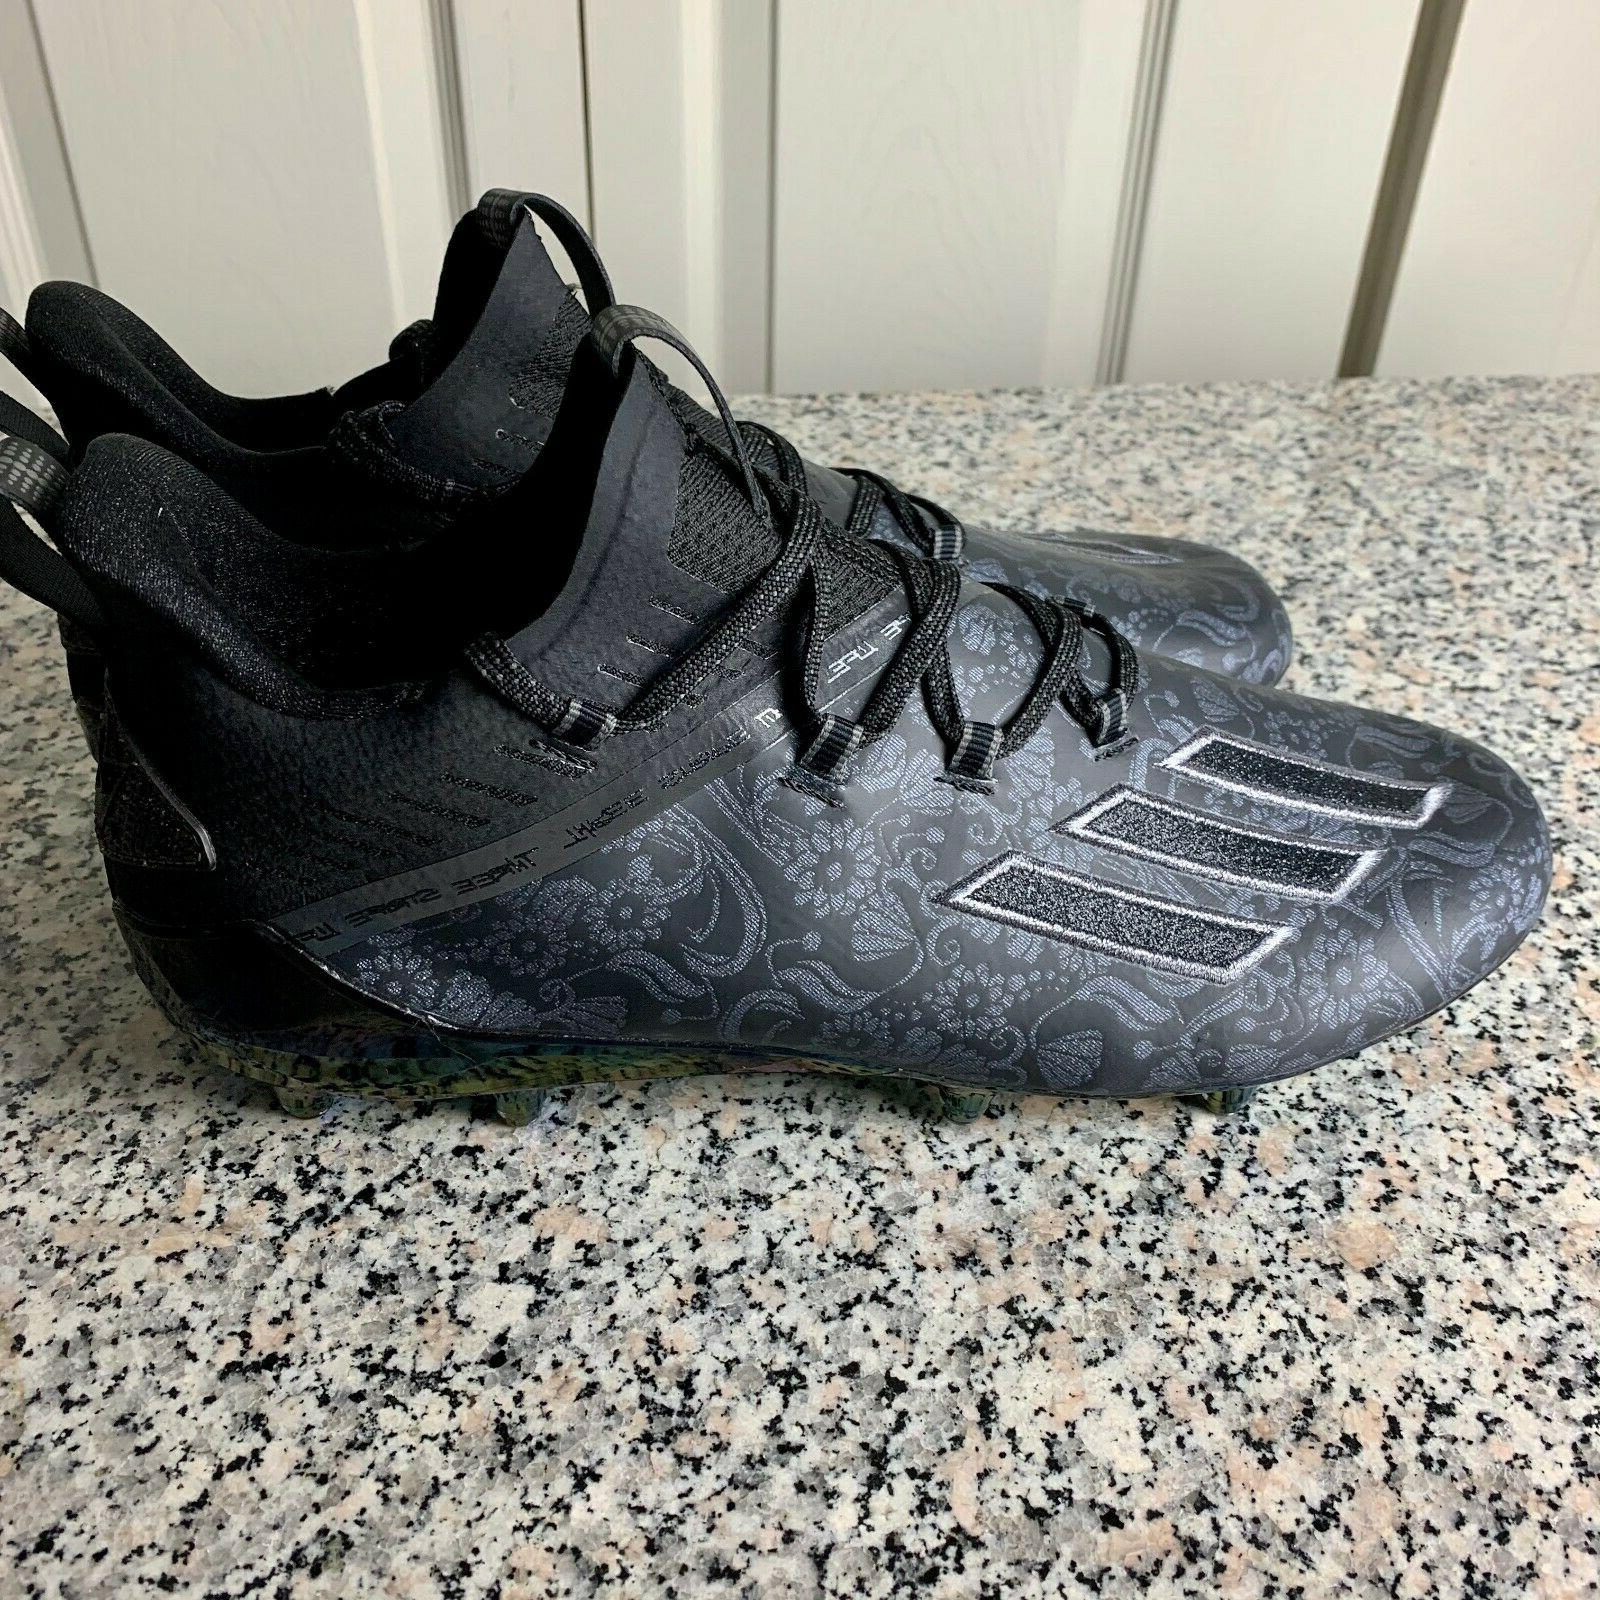 Adidas Adizero Young King EH2723 Size 12